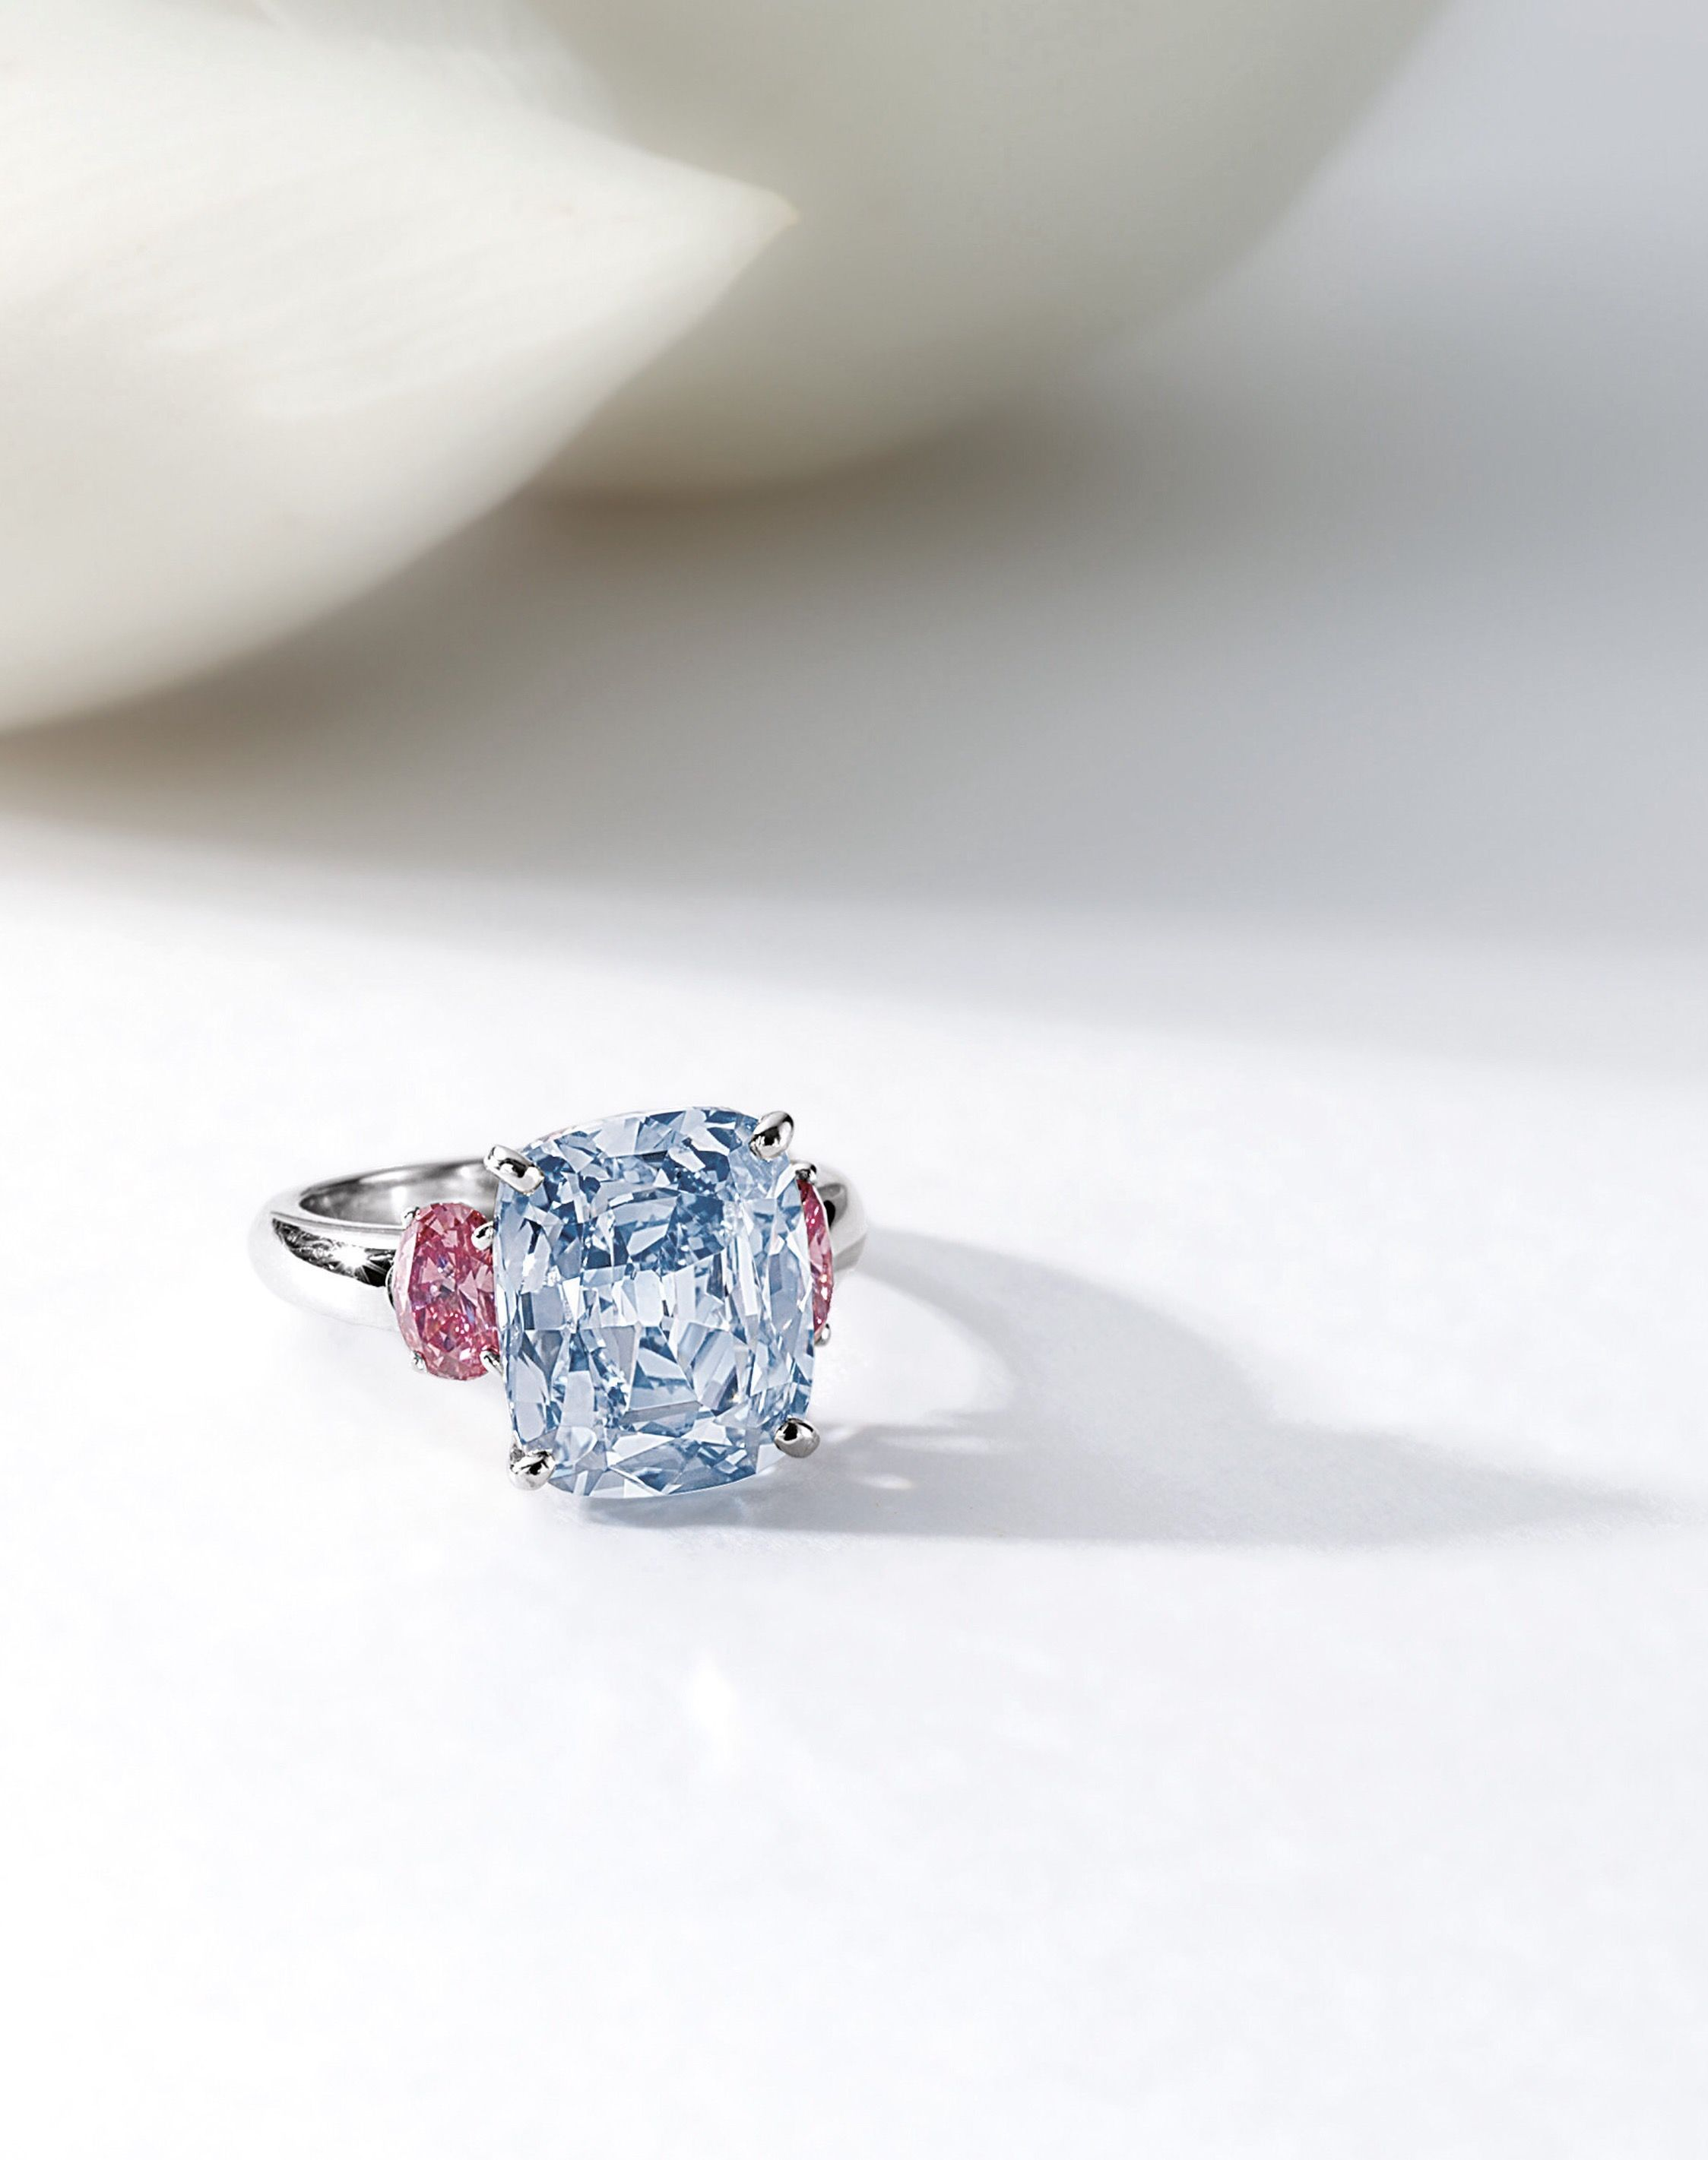 Rare And Important Fancy Vivid Blue Diamond And Pink Diamond Ring